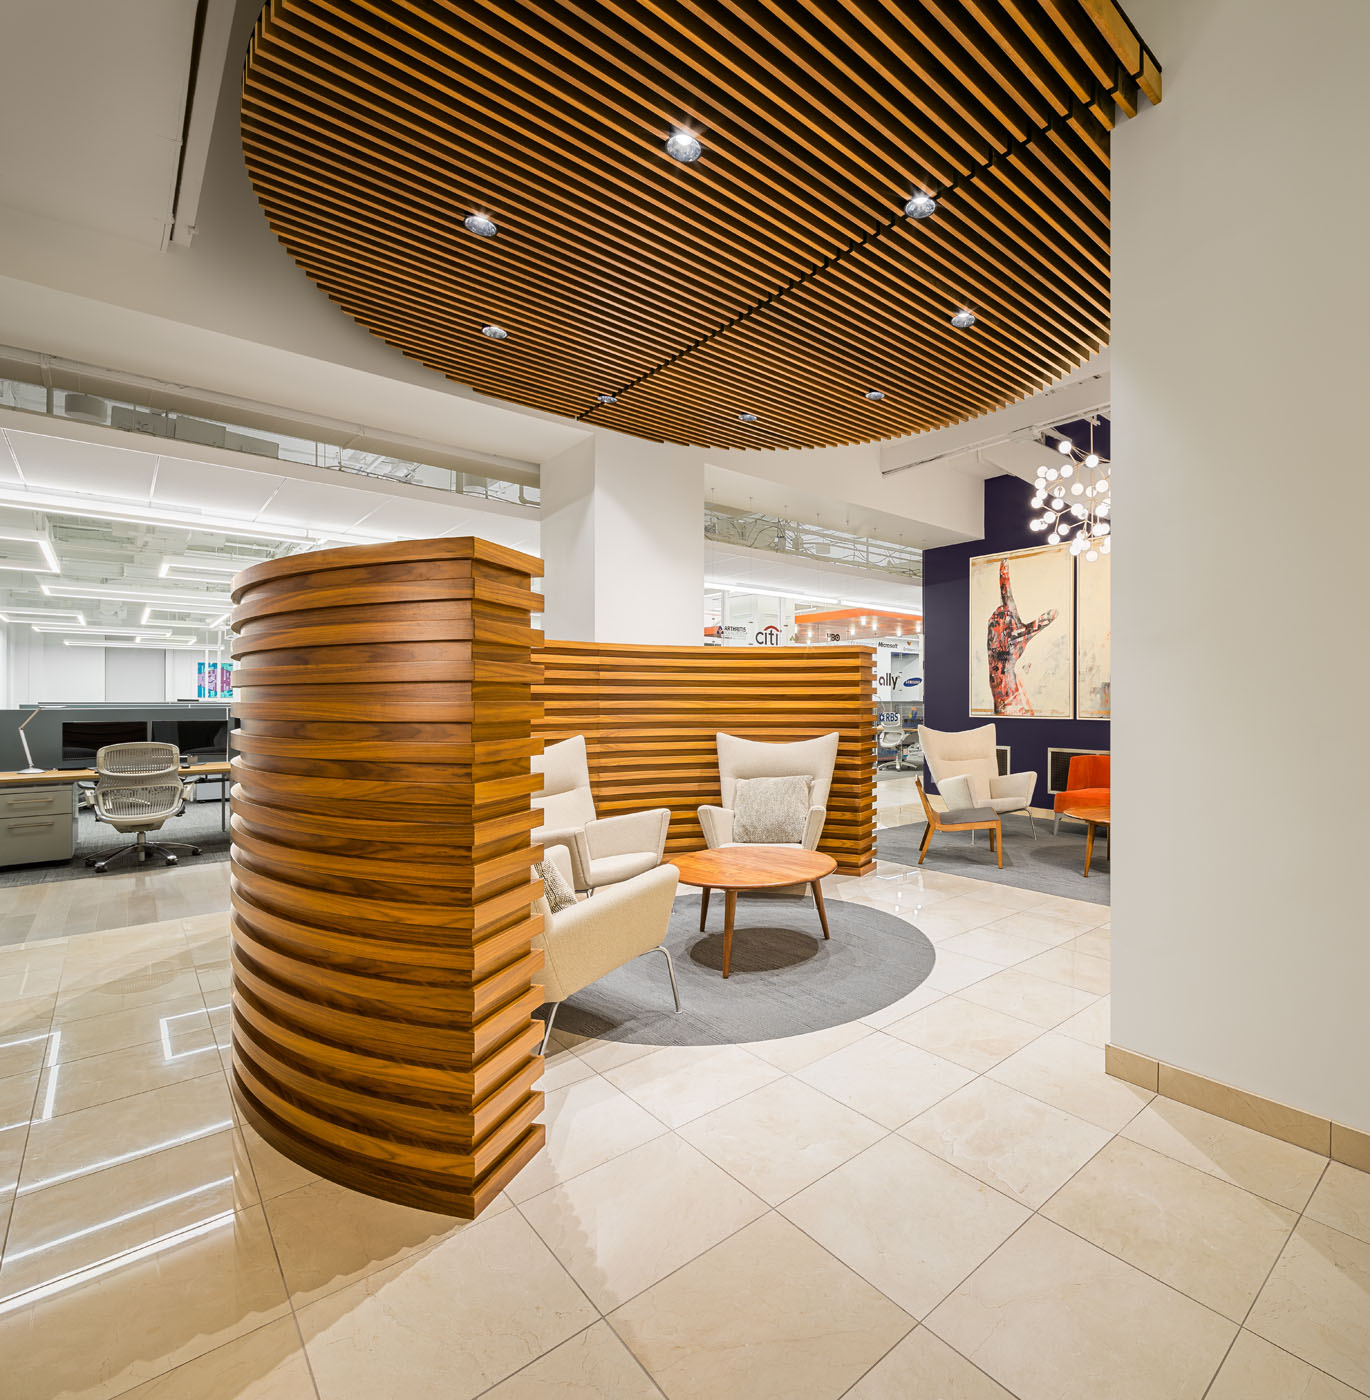 Architectural And Interior Photography: Architectural Photography